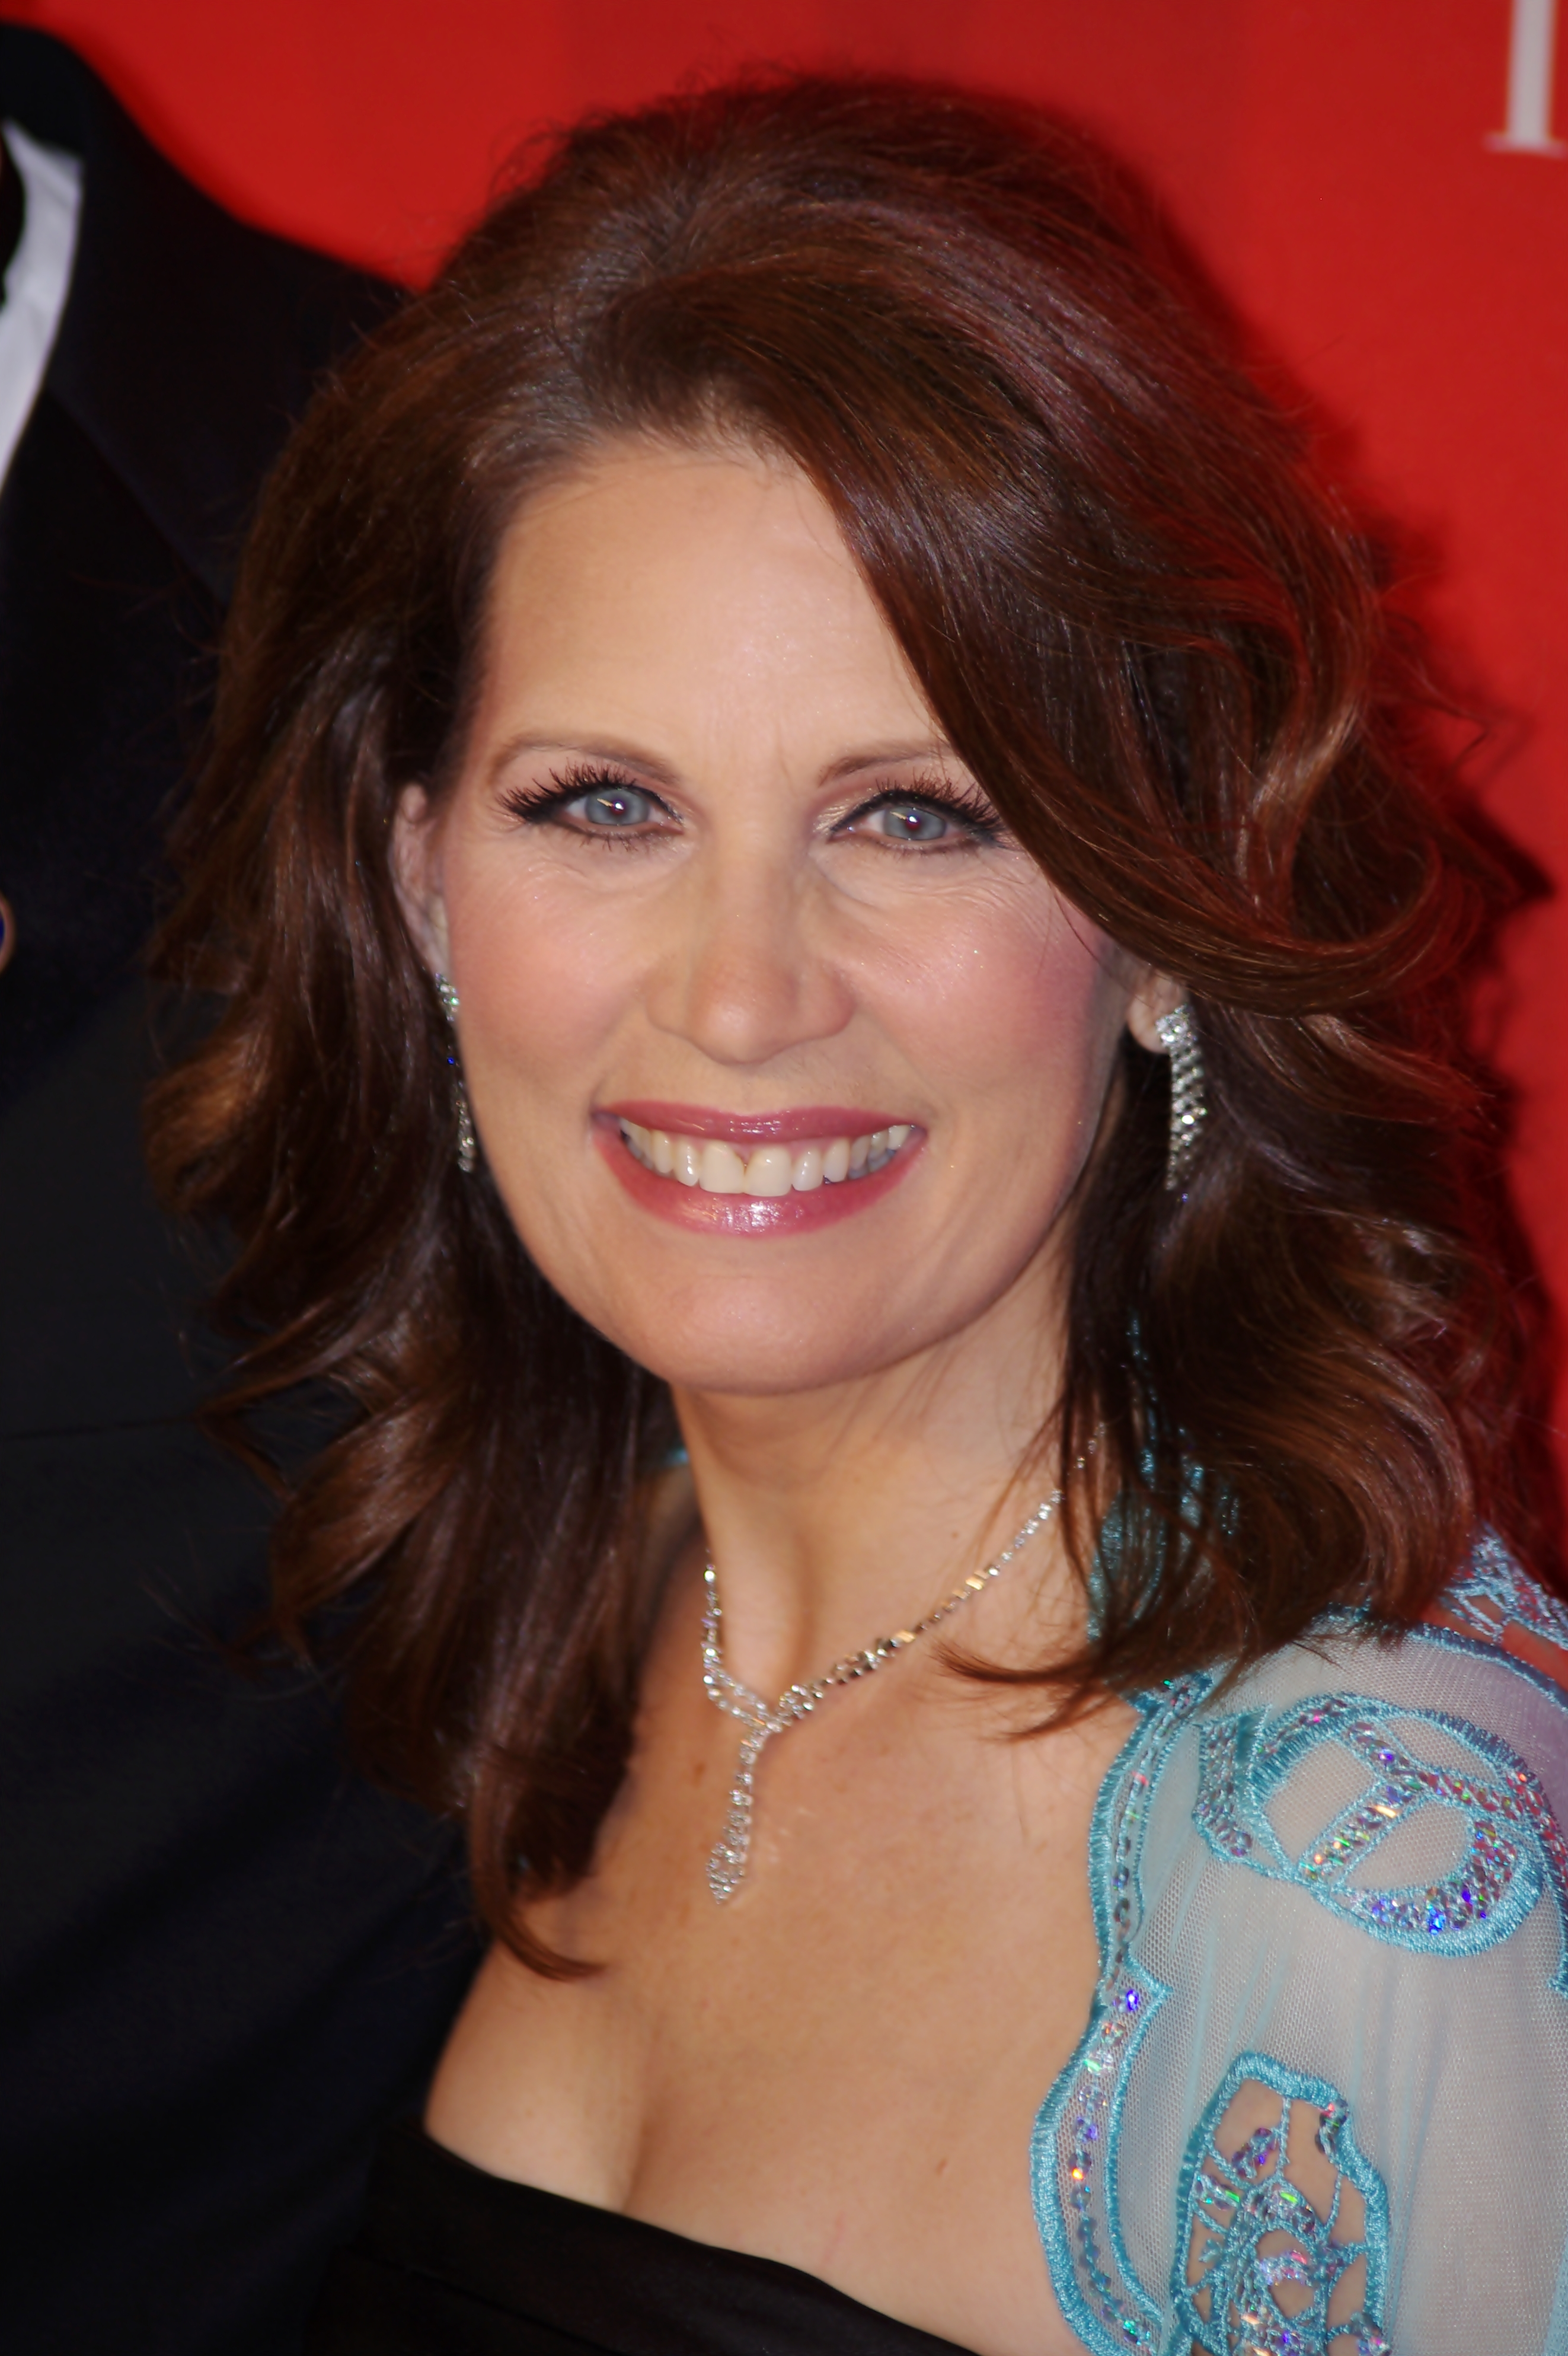 Description Michele Bachmann 2011 Shankbone 5JPG